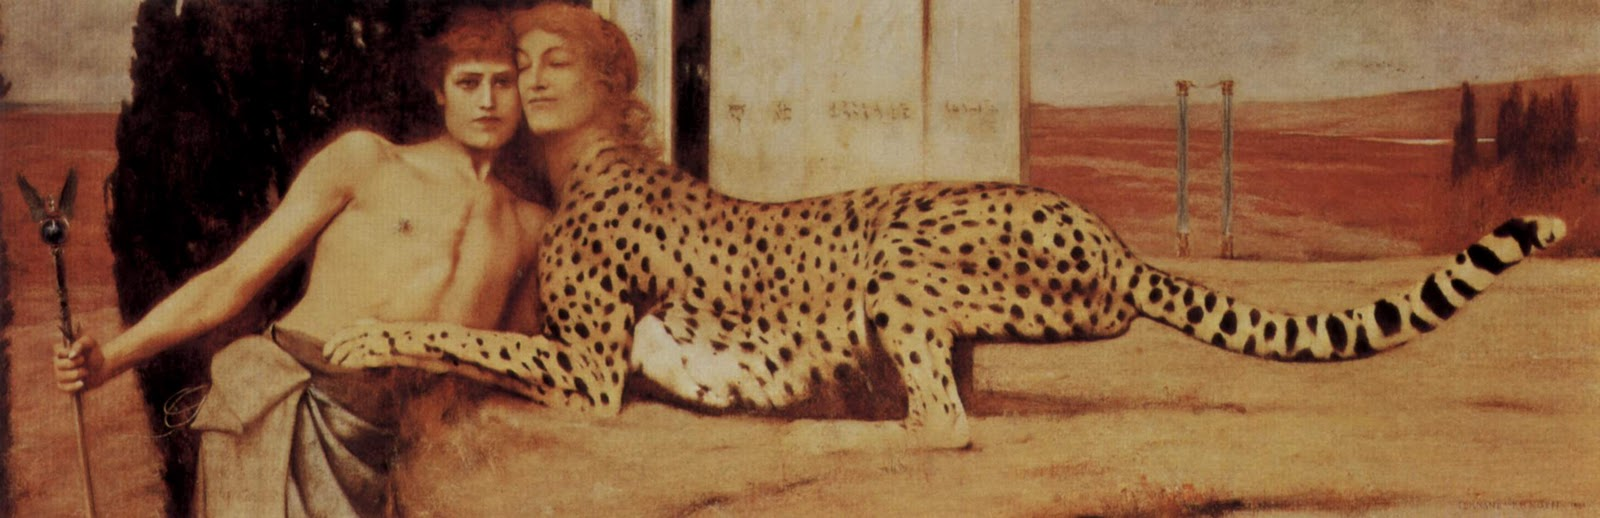 Fernand Khnopff sphinx caress